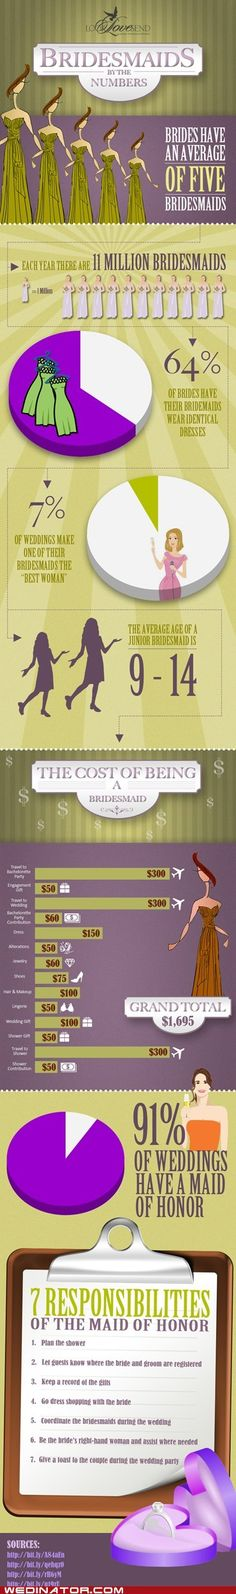 bridesmaid stats